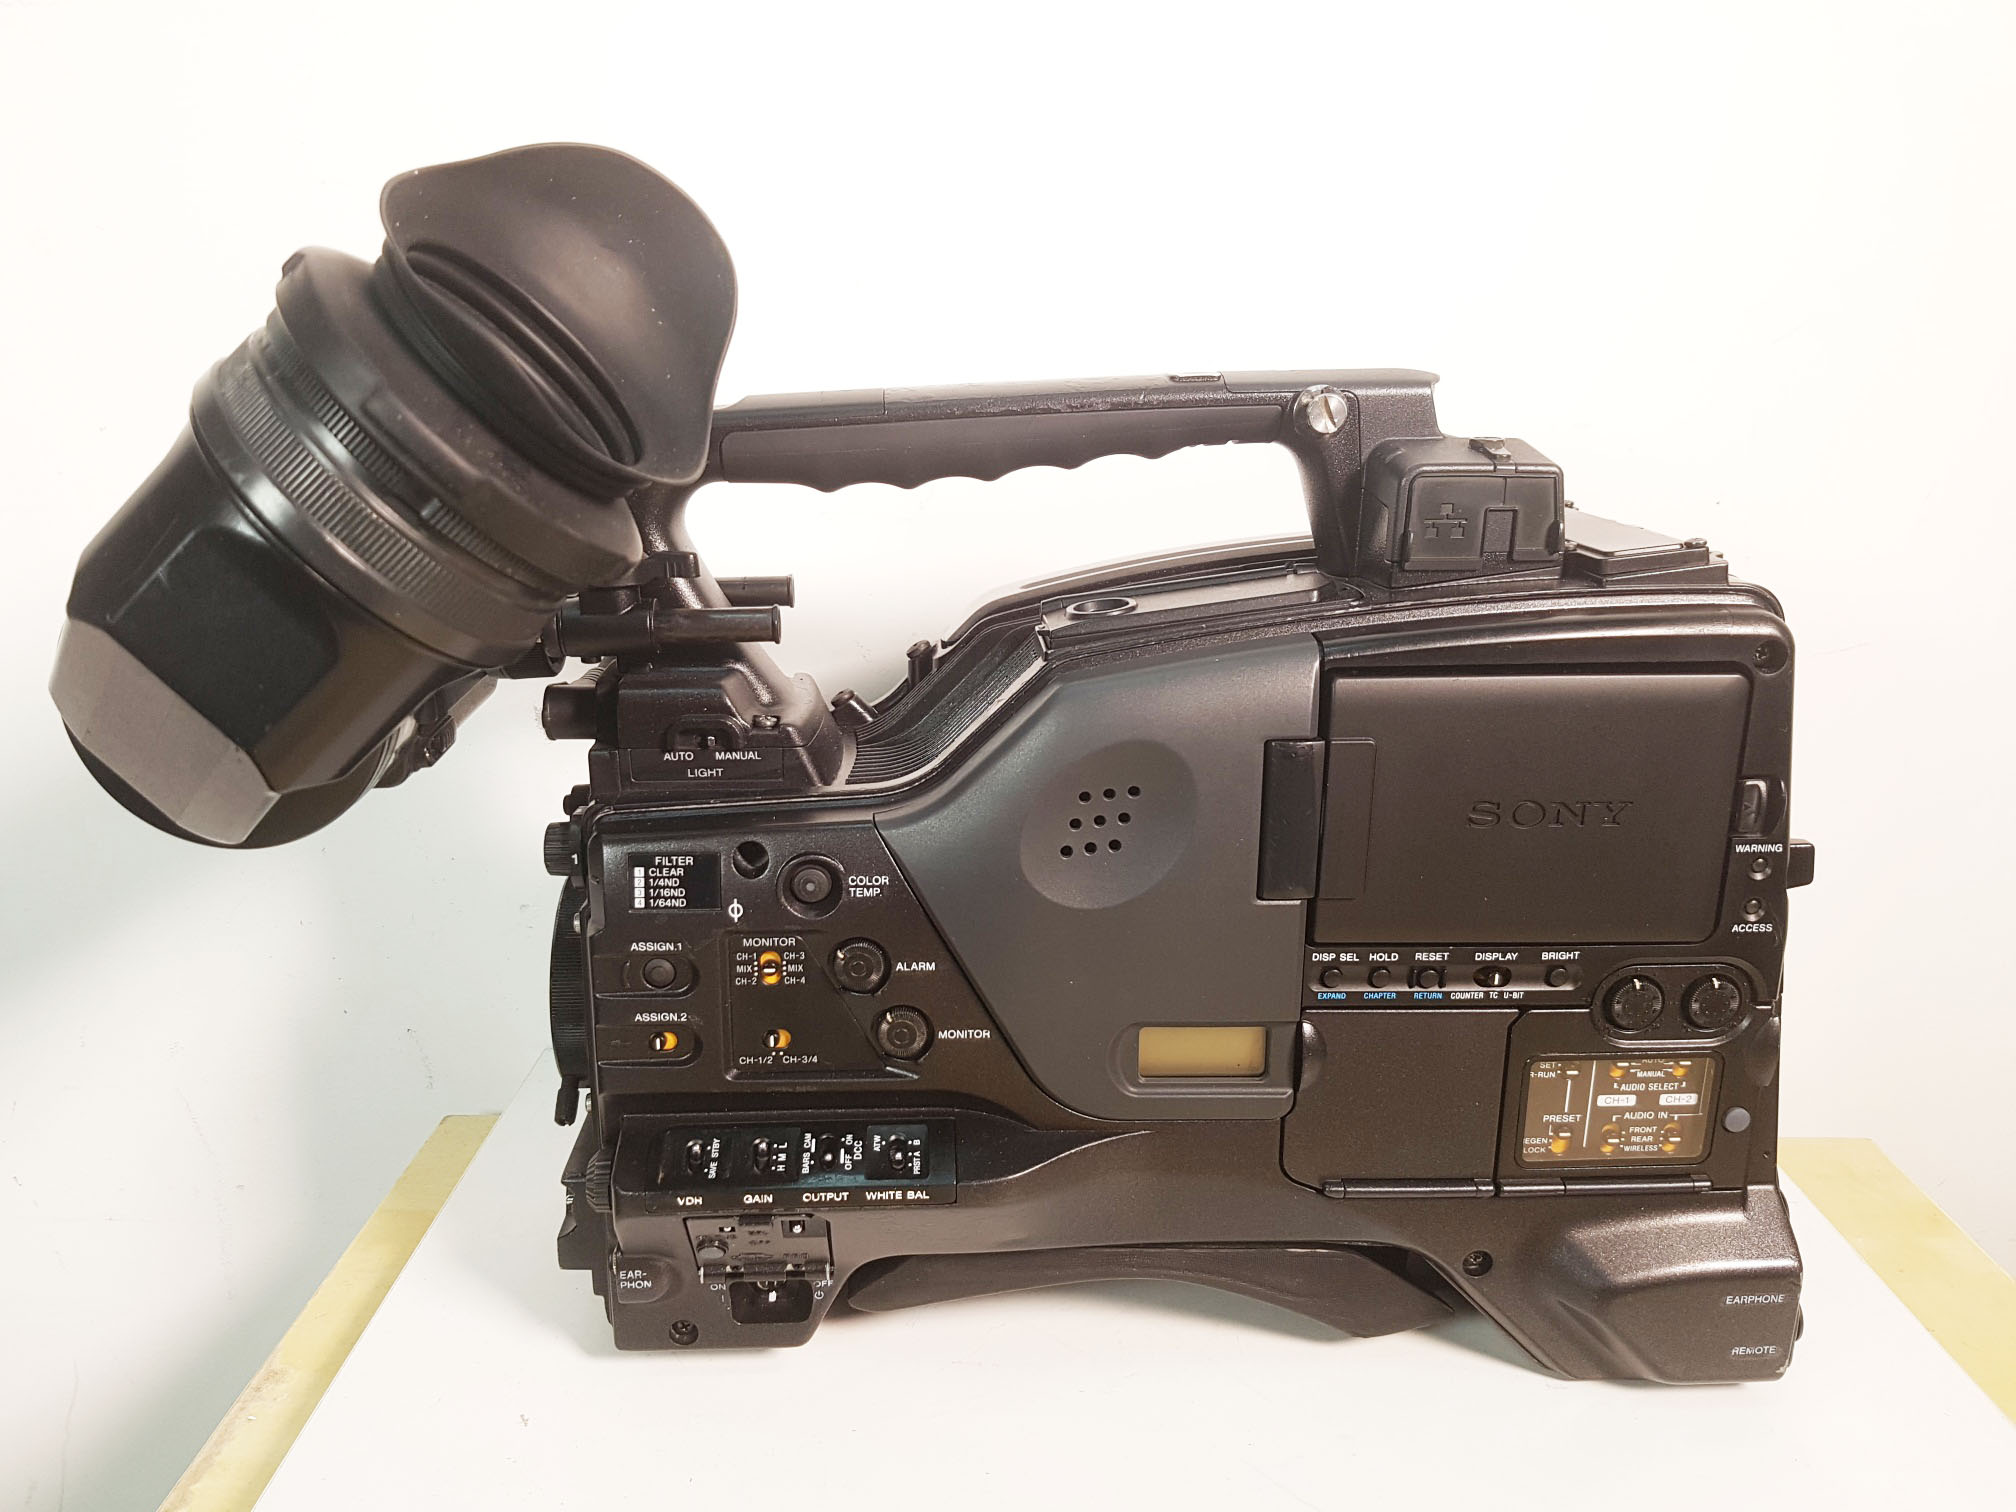 sony pdw 700 hdvf 200 xdcam hd camcorder with ope 3474 rh kitplus com sony pdw 700 user manual sony pdw 700 service manual